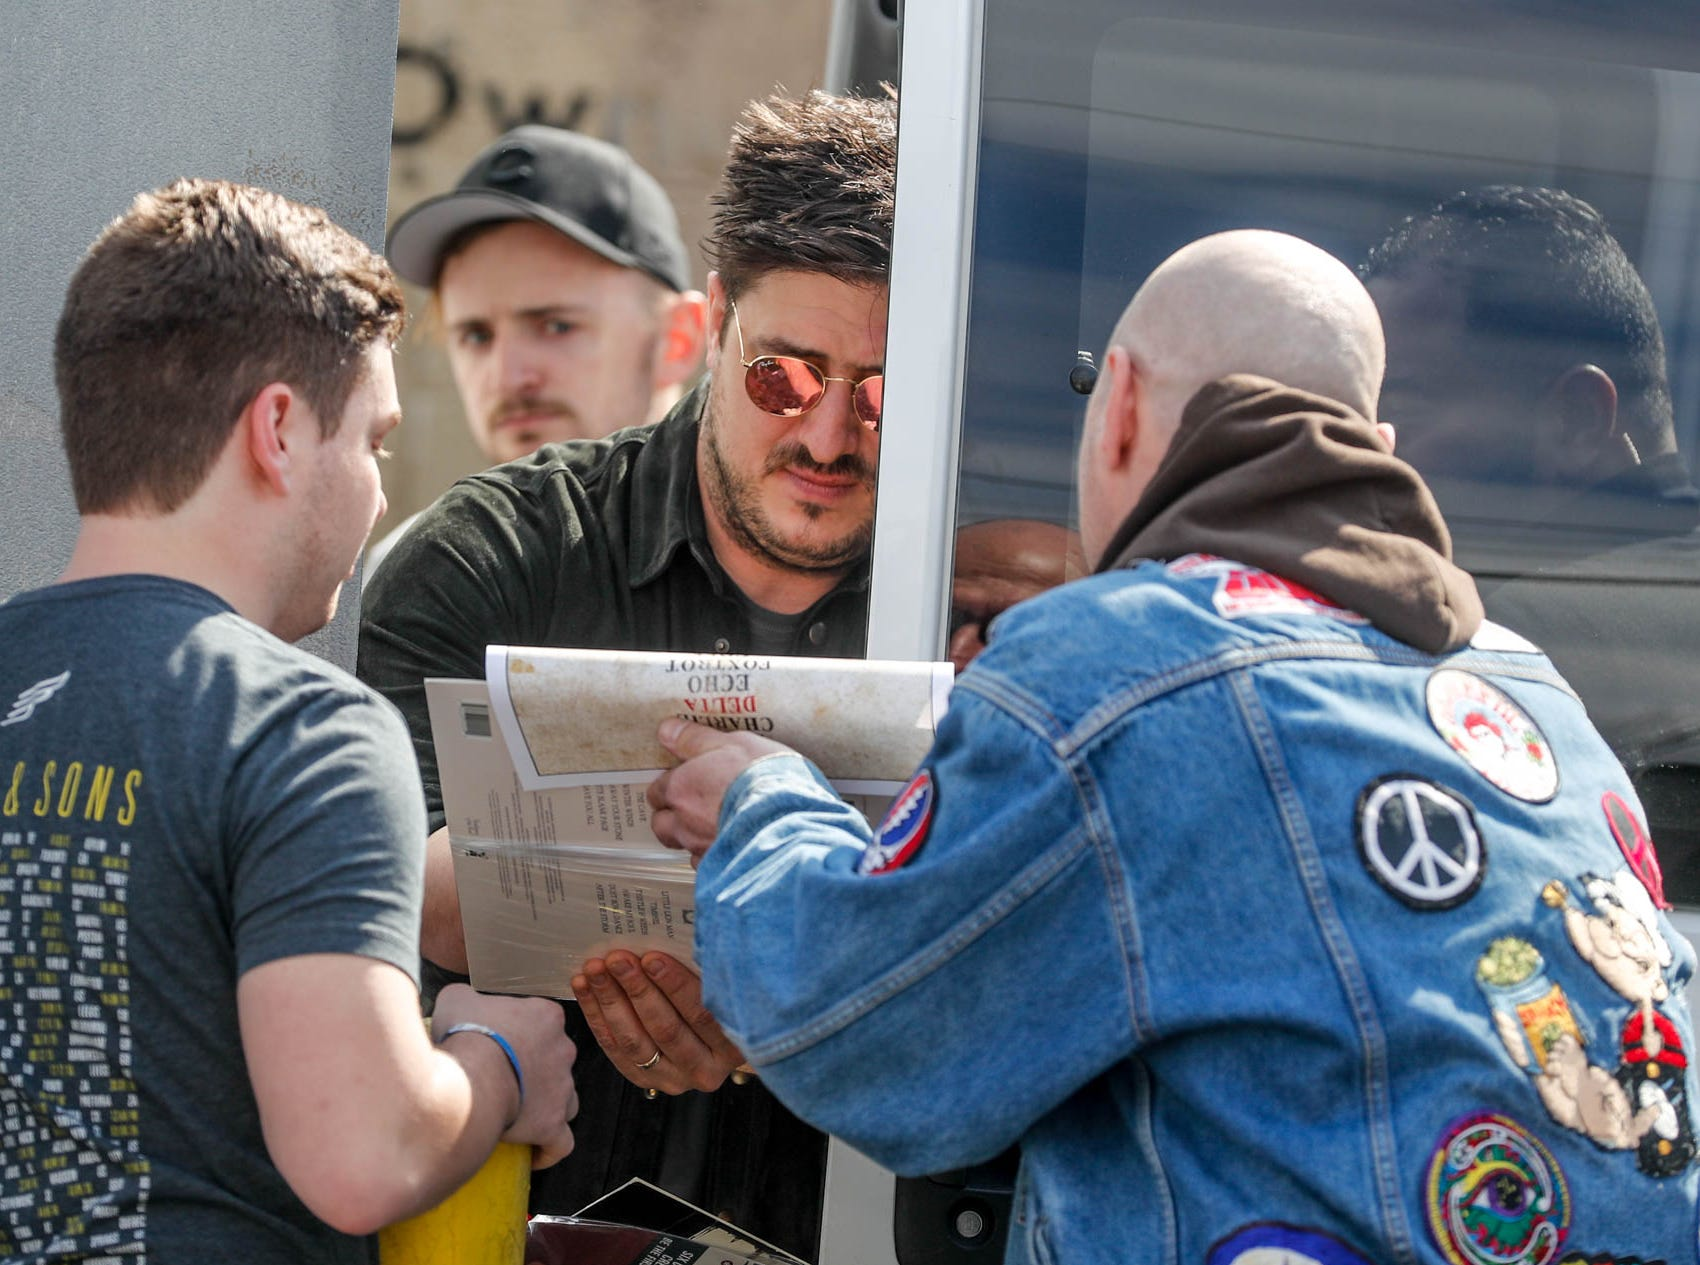 Mumford & Sons fans Michael Stebing, left, and Lindsay Banach get an autograph from band member Marcus Mumford, after the band's special in-store appearance at Indy CD & Vinyl on Monday, March 25, 2019.